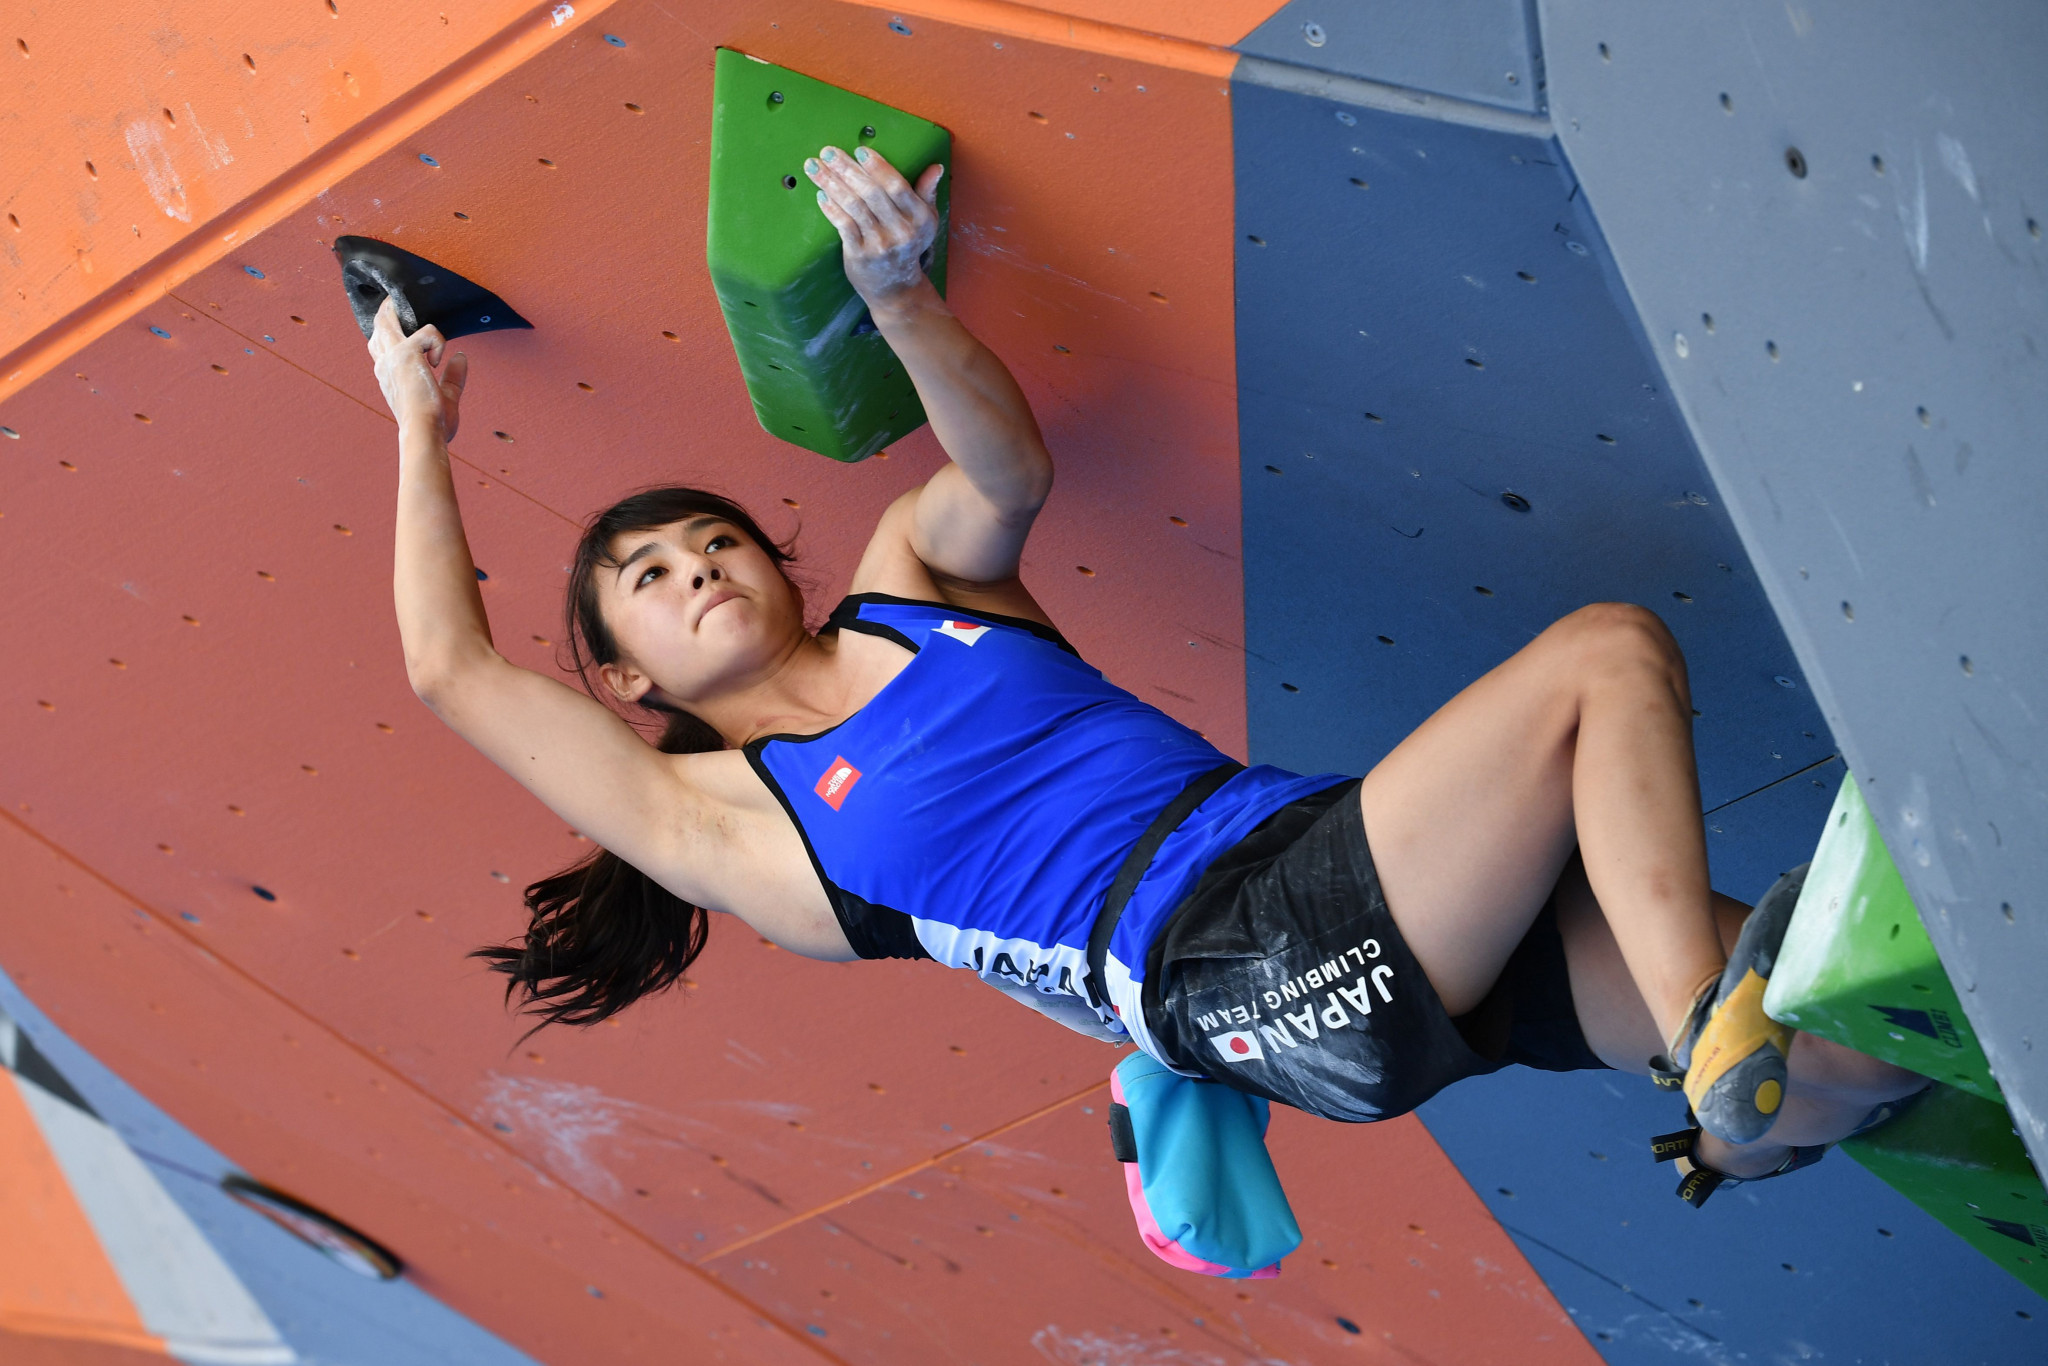 Japan's Futaba Ito won gold in the women's bouldering event at the IFSC Asian Championships ©Getty Images